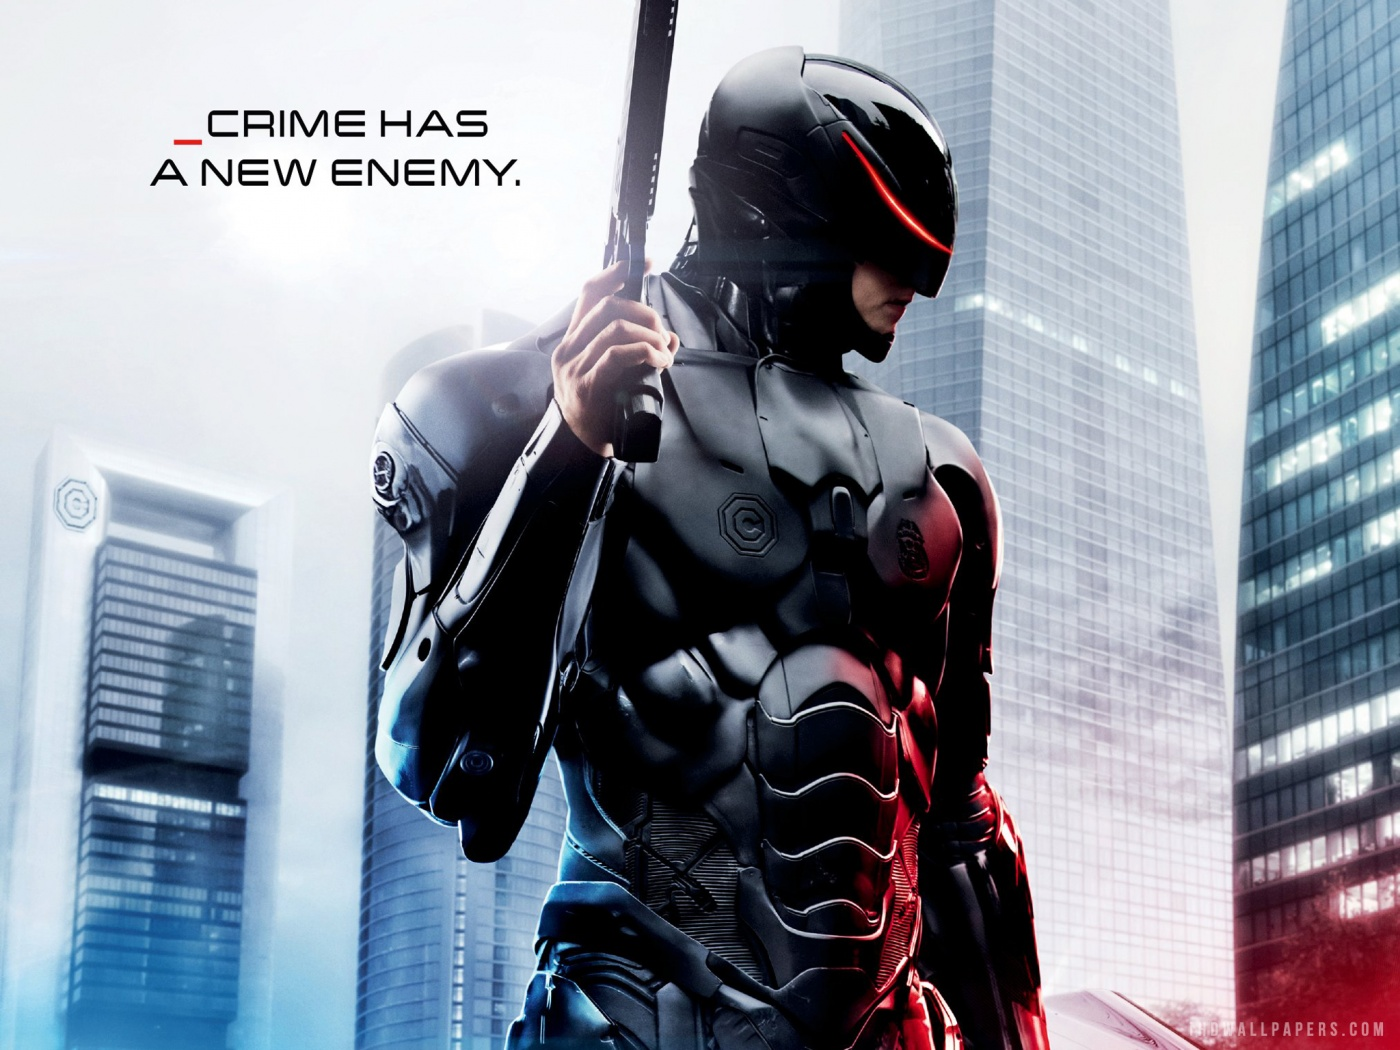 robocop_2014 featured